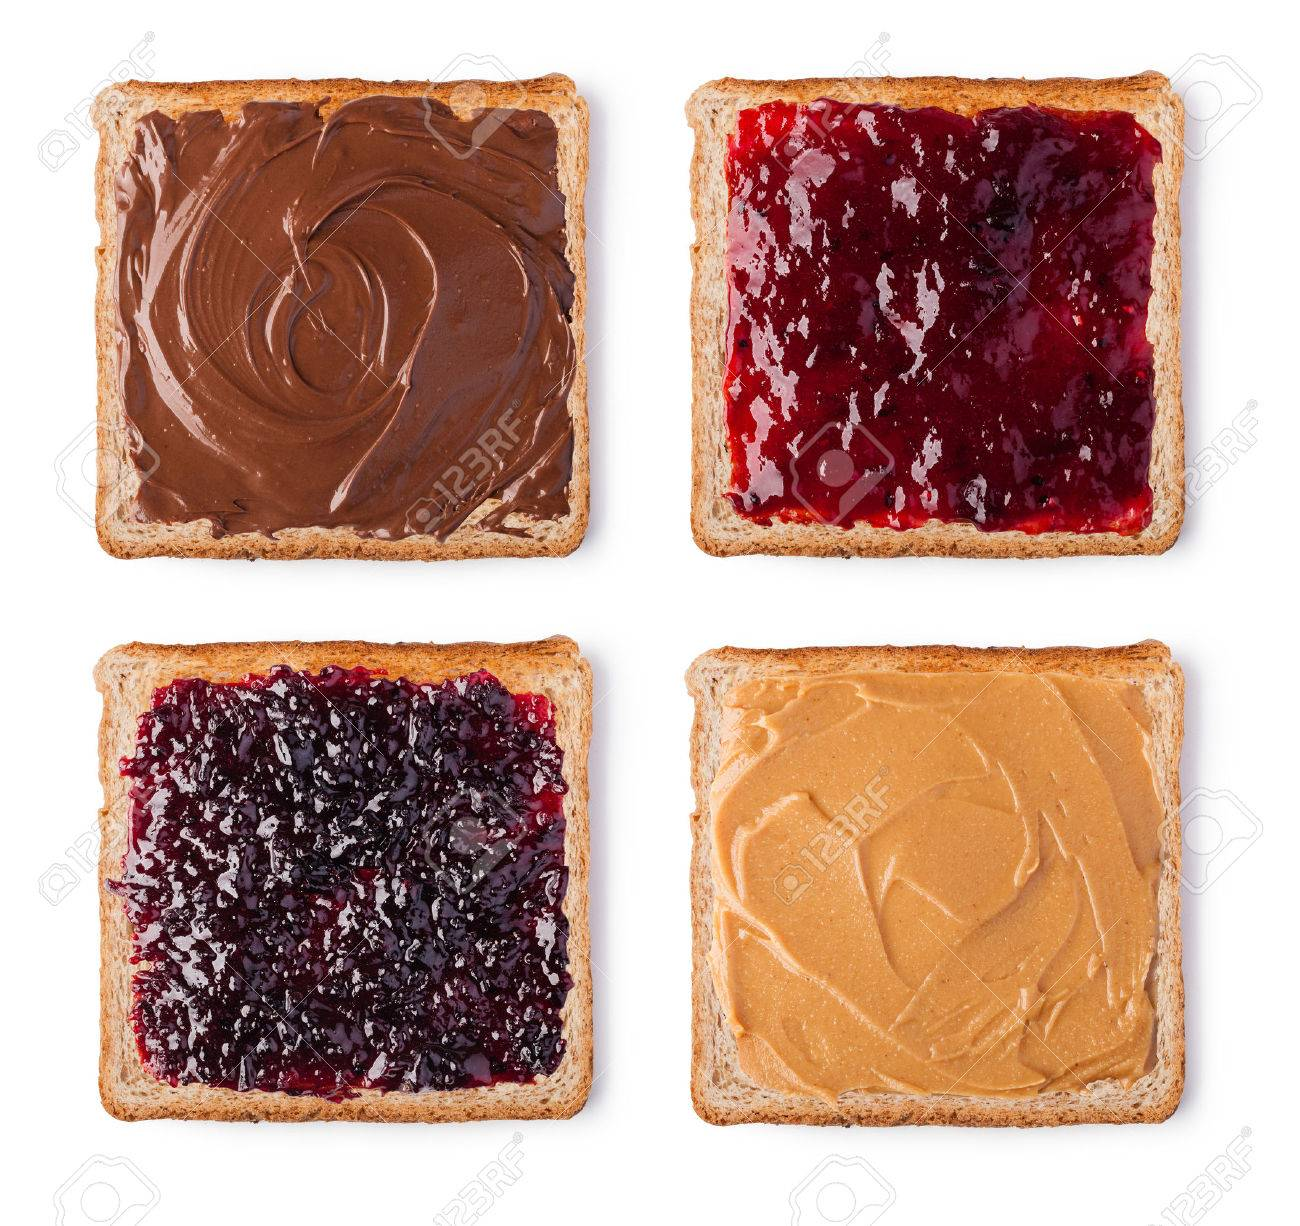 Toast with Chocolate, butter peanut and jam. Isolated on a white background - 53827841